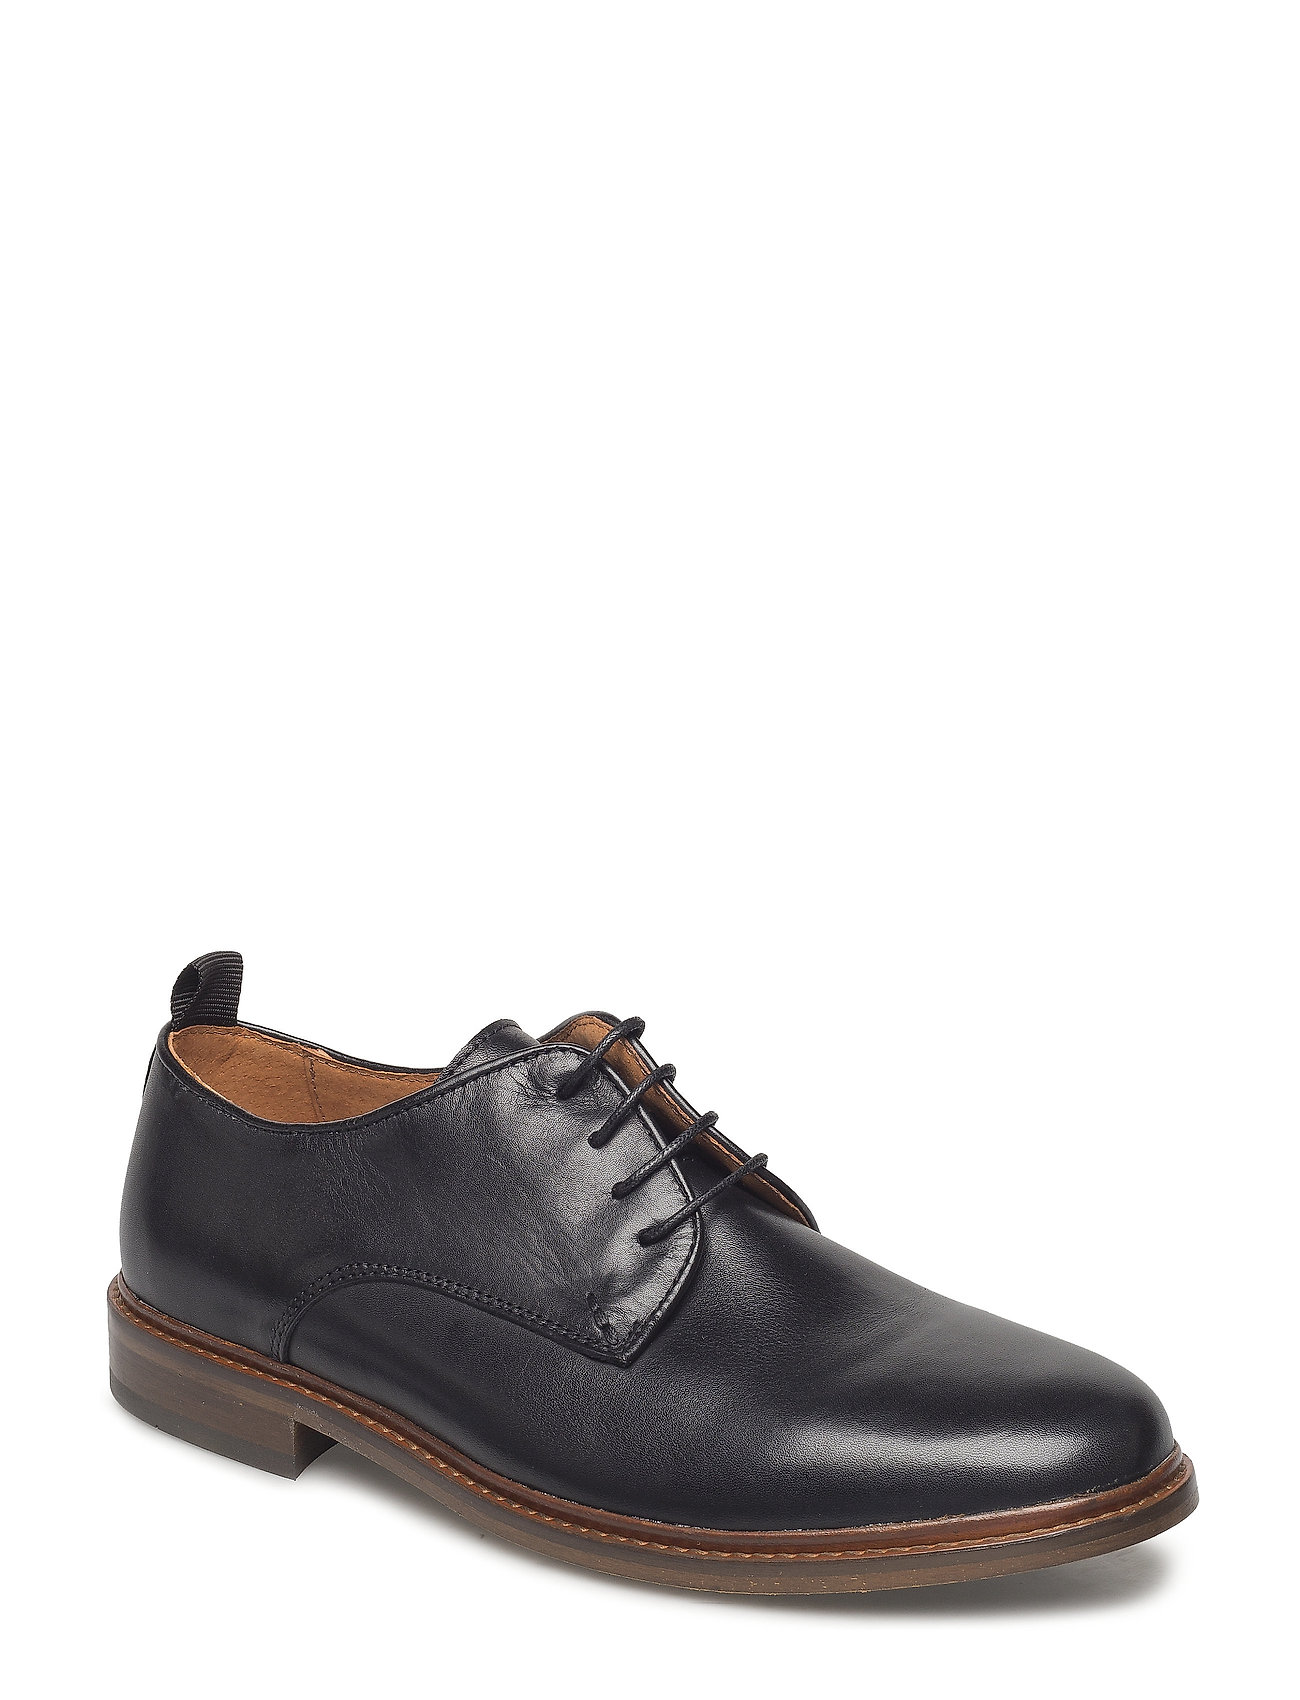 Image of Stb-Nate L Shoes Business Laced Shoes Sort Shoe The Bear (3440539565)